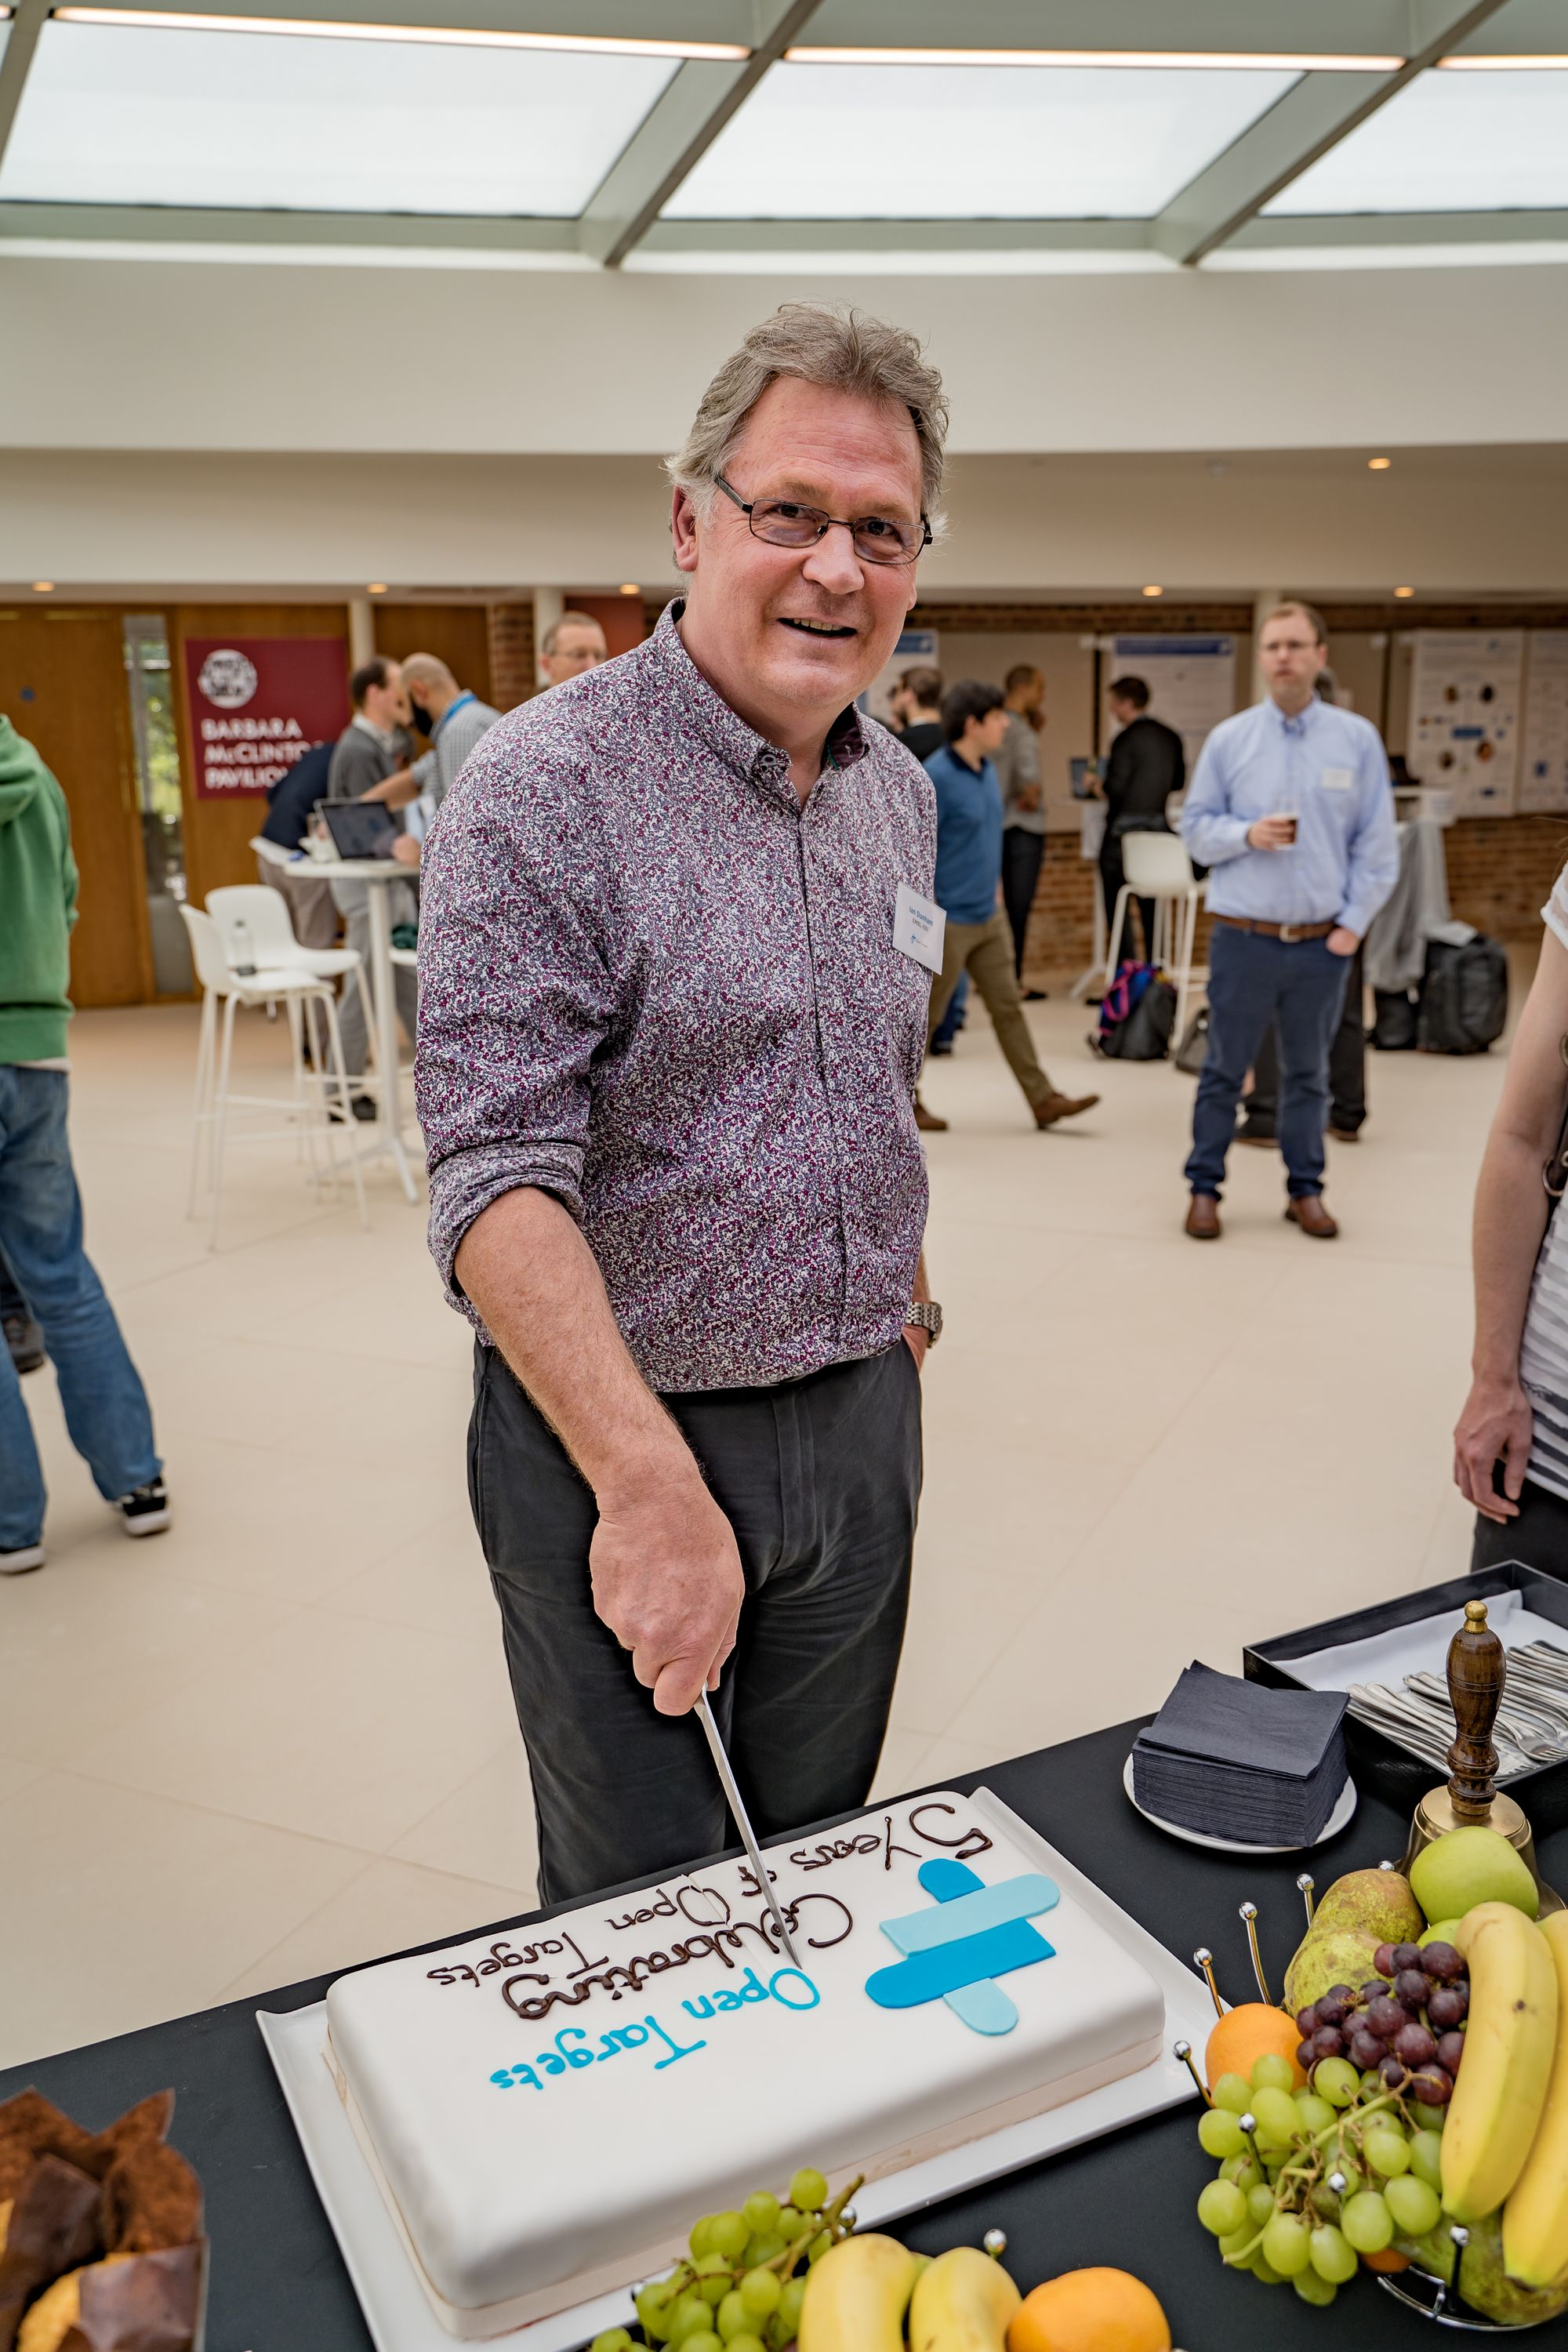 Male person stands behind a table looking at the camera, holding a knife to cut a cake.